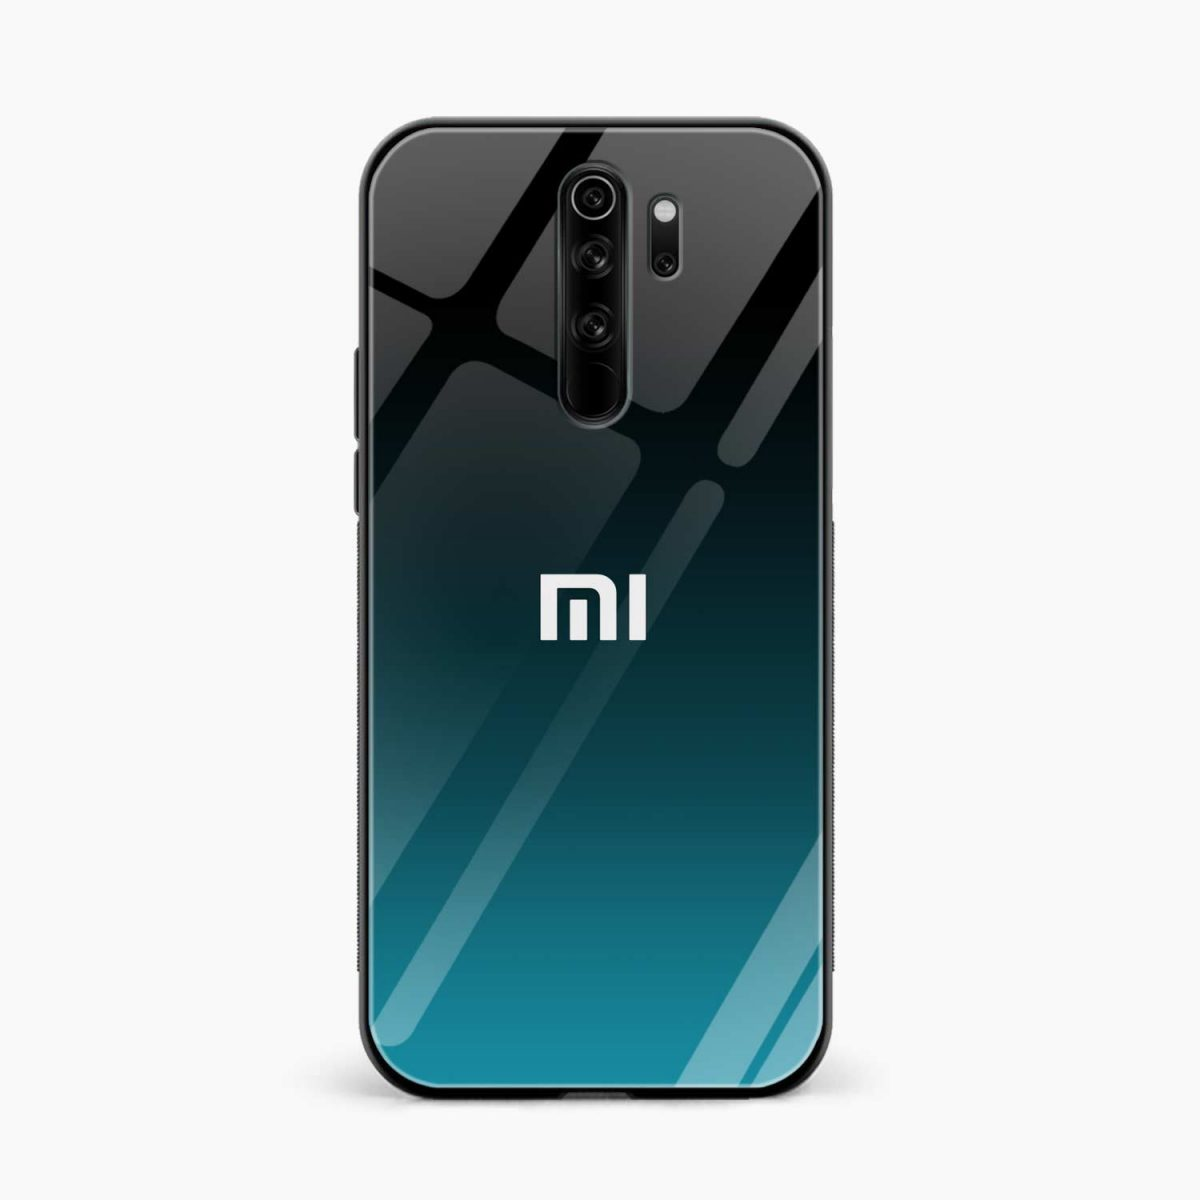 ultramarine glass redmi note 8 pro back cover front view